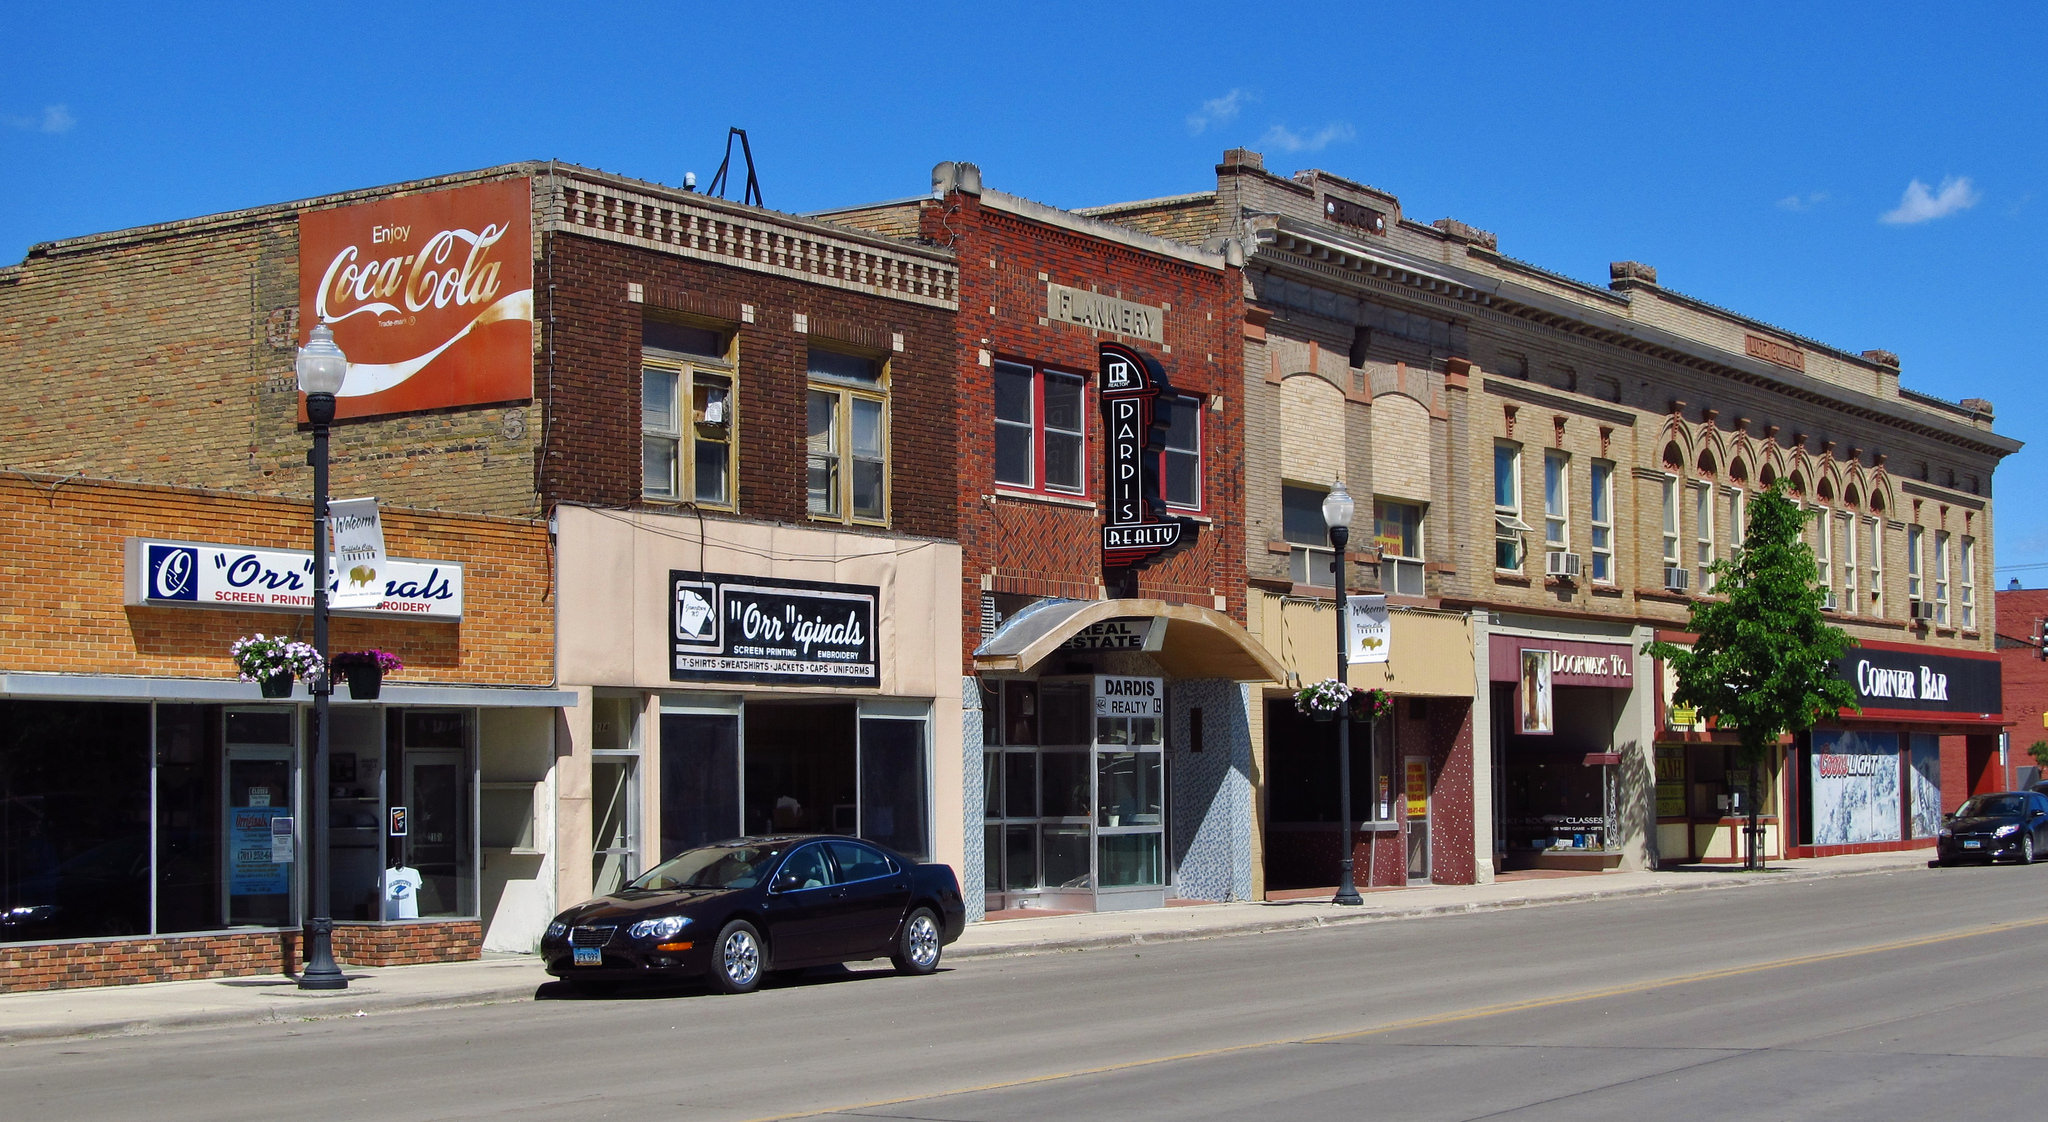 Jamestown Nd Pictures To Pin On Pinterest PinsDaddy